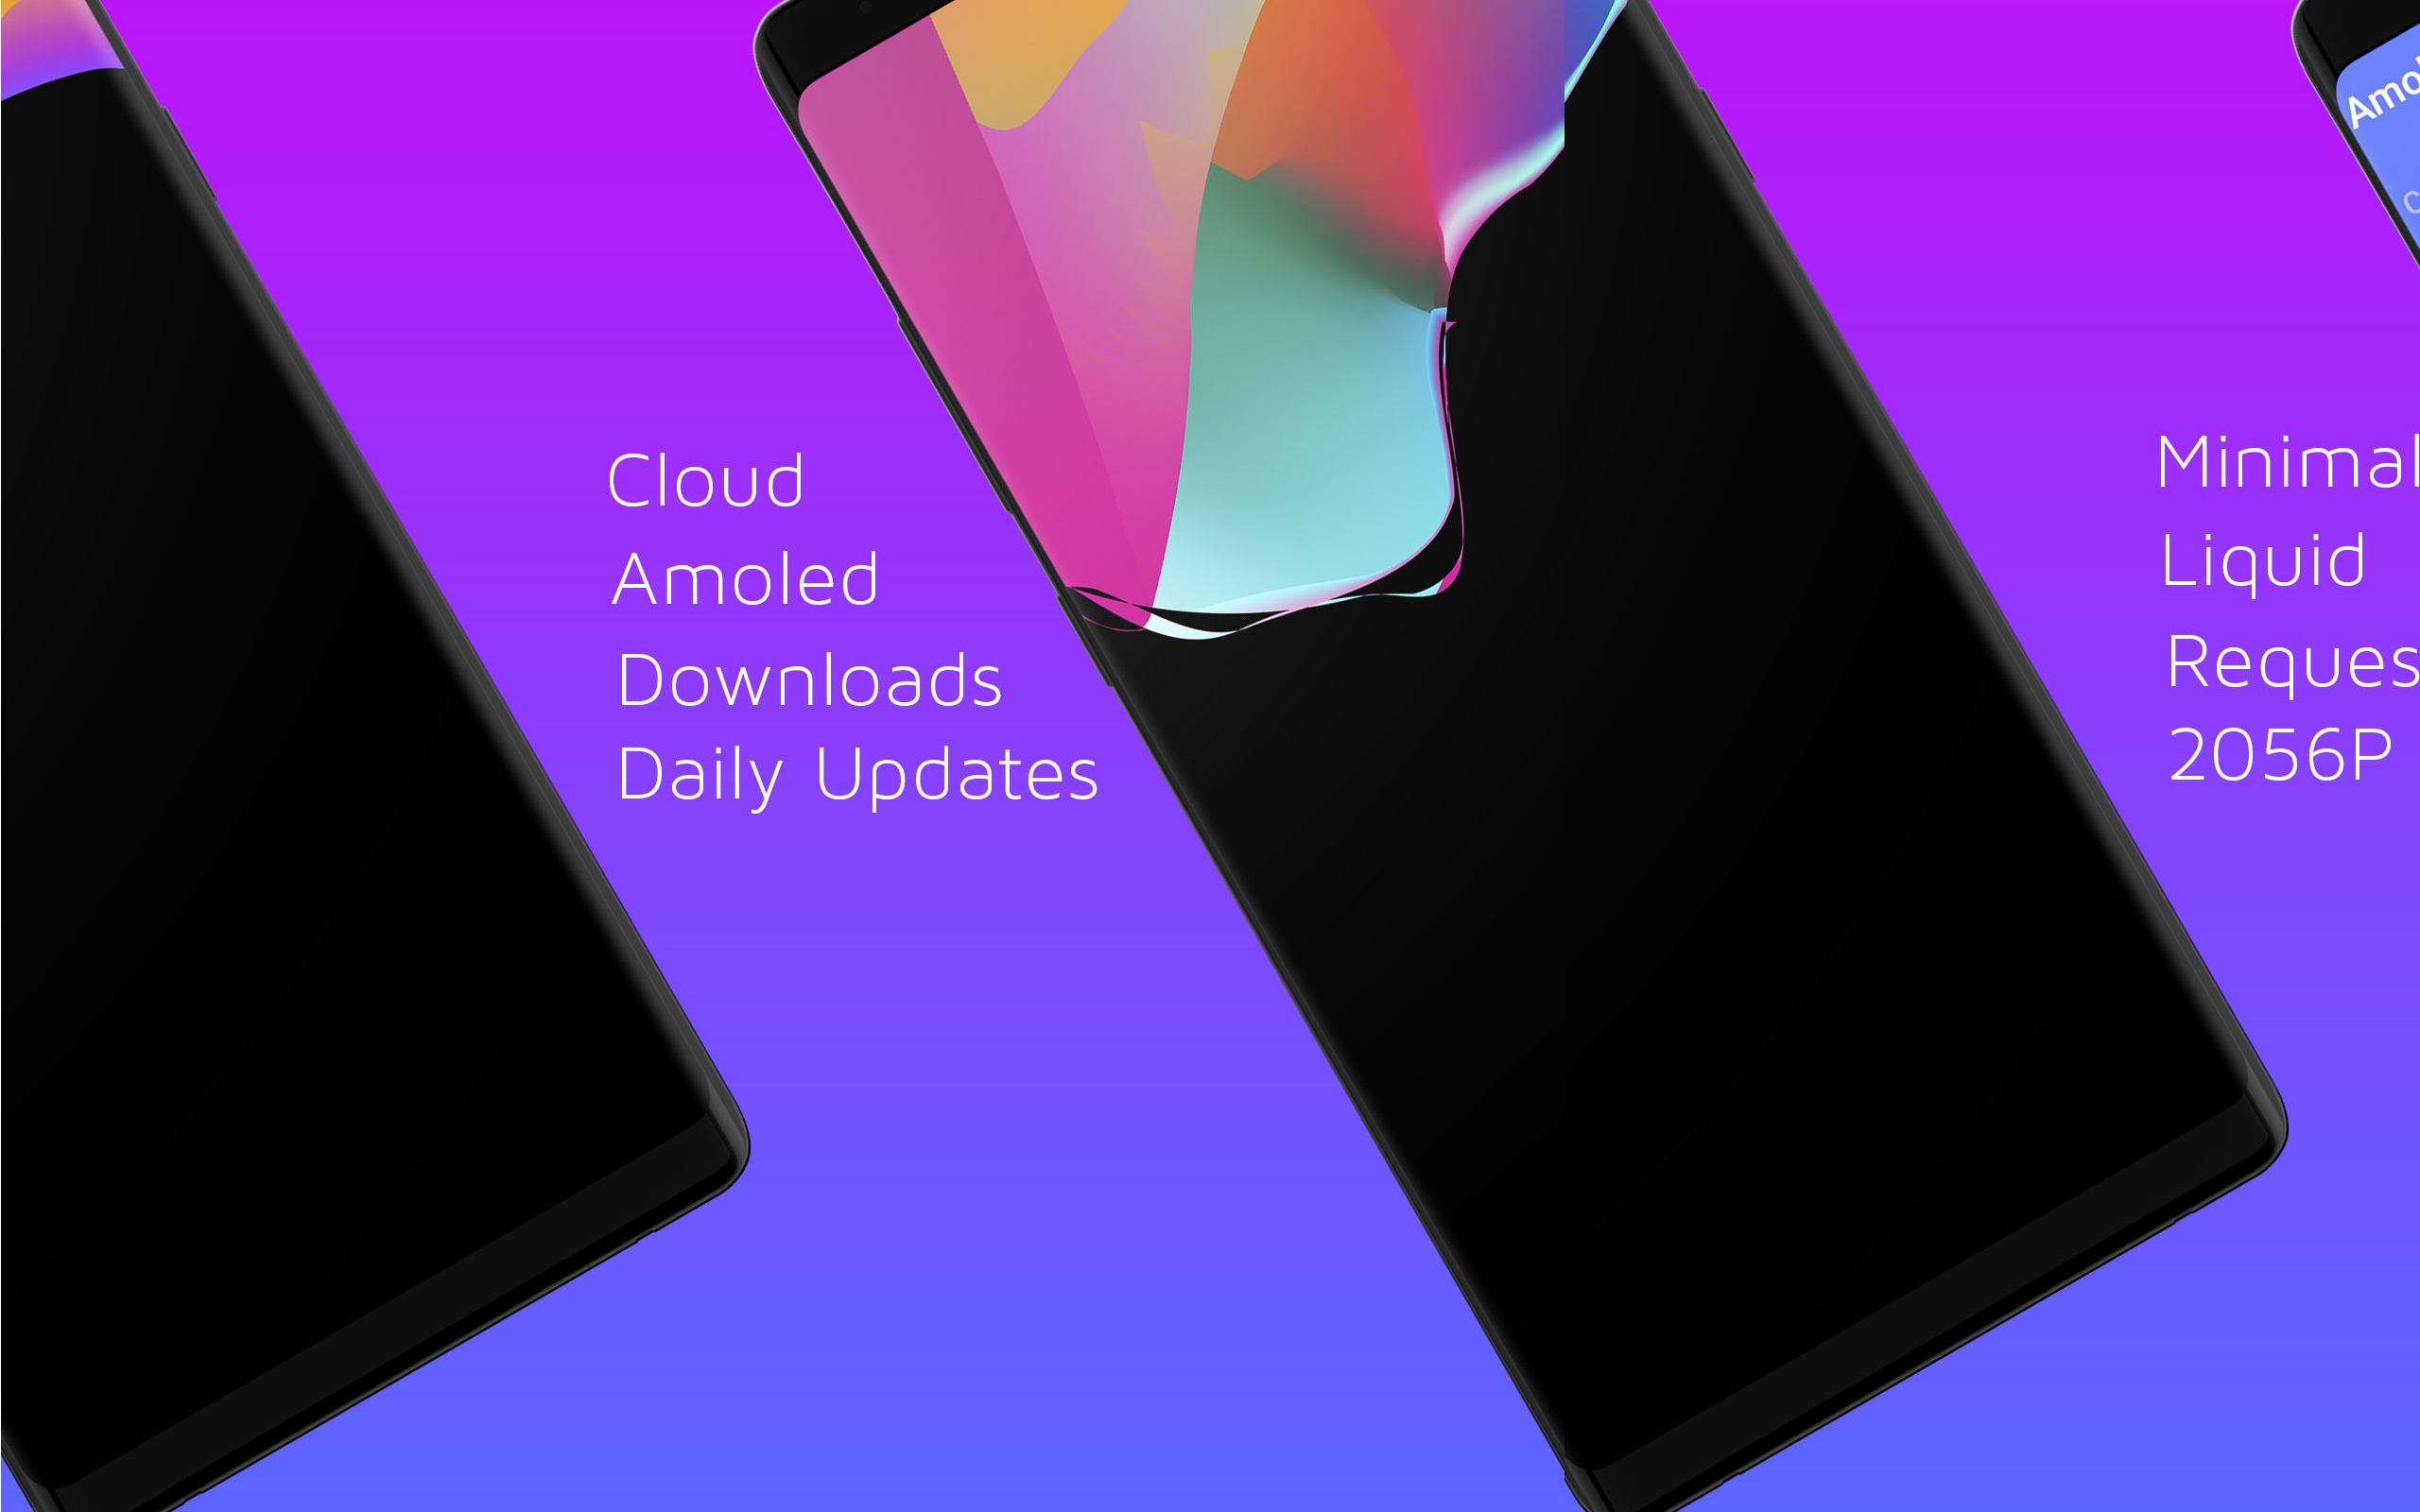 Amazon.com: AmoledWalls - Wallpaper: Appstore for Android